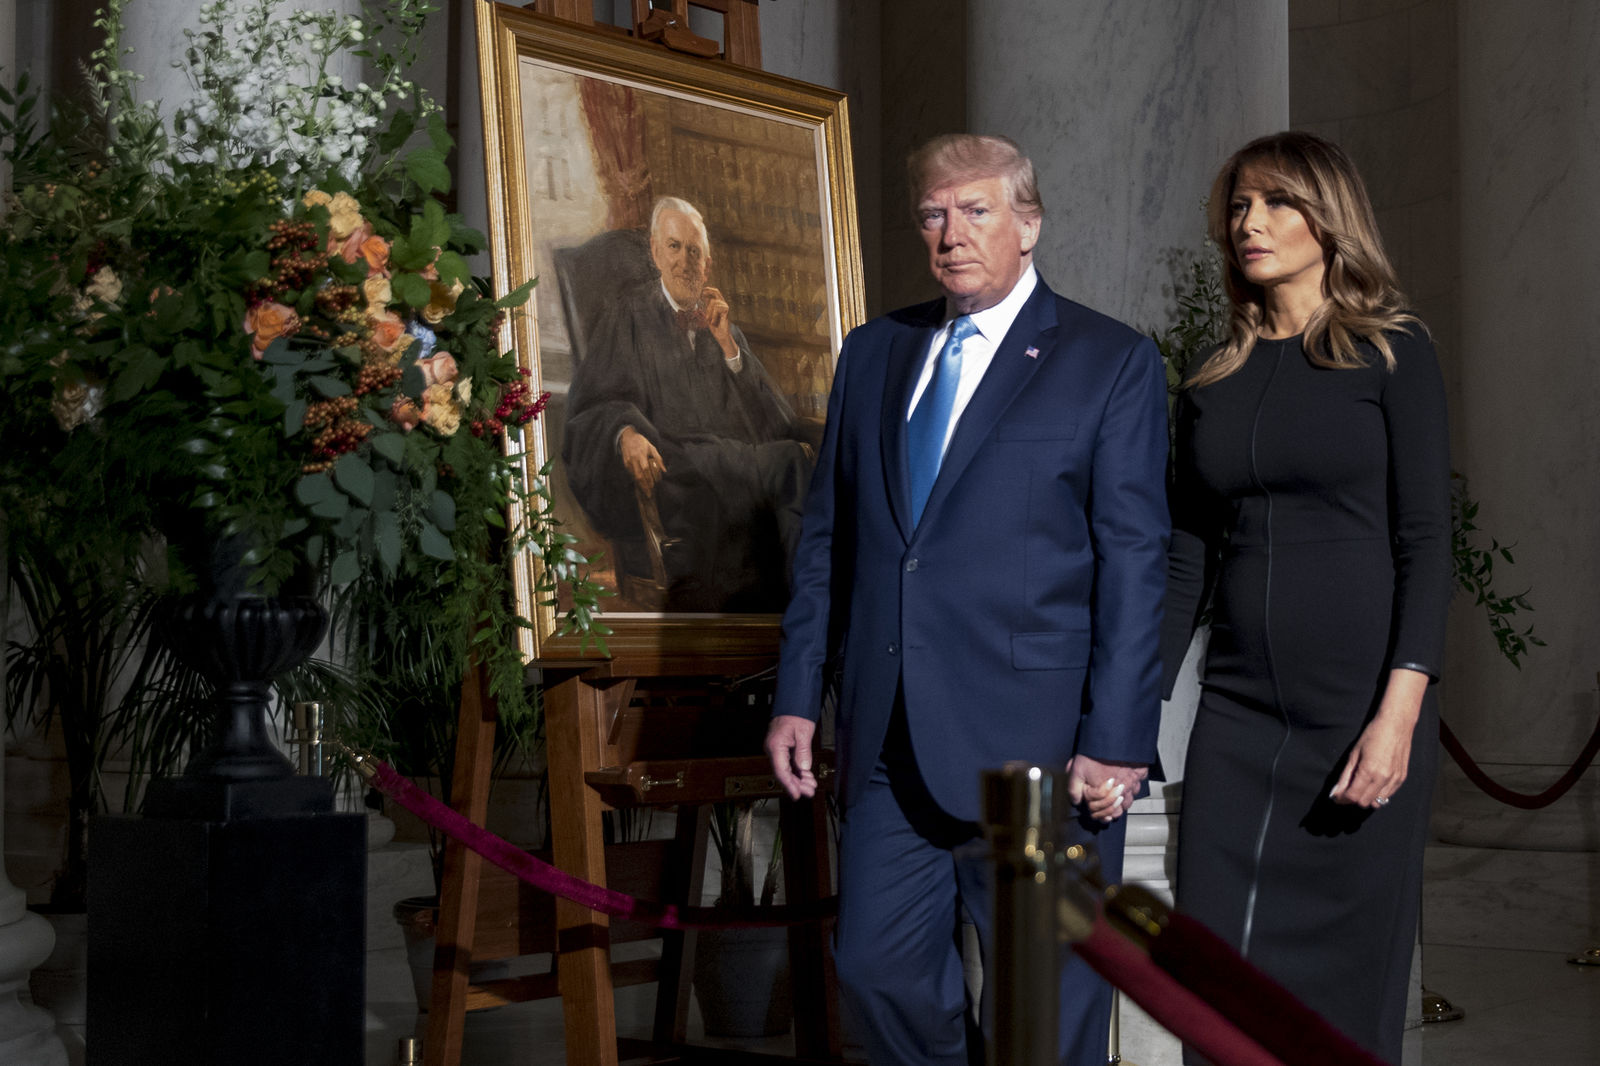 President Donald Trump and first lady Melania Trump walk past a painting of the late Supreme Court Justice John Paul Stevens after they pay their respects as he lies in repose in the Great Hall of the Supreme Court in Washington, Monday, July 22, 2019. (AP Photo/Andrew Harnik, pool)